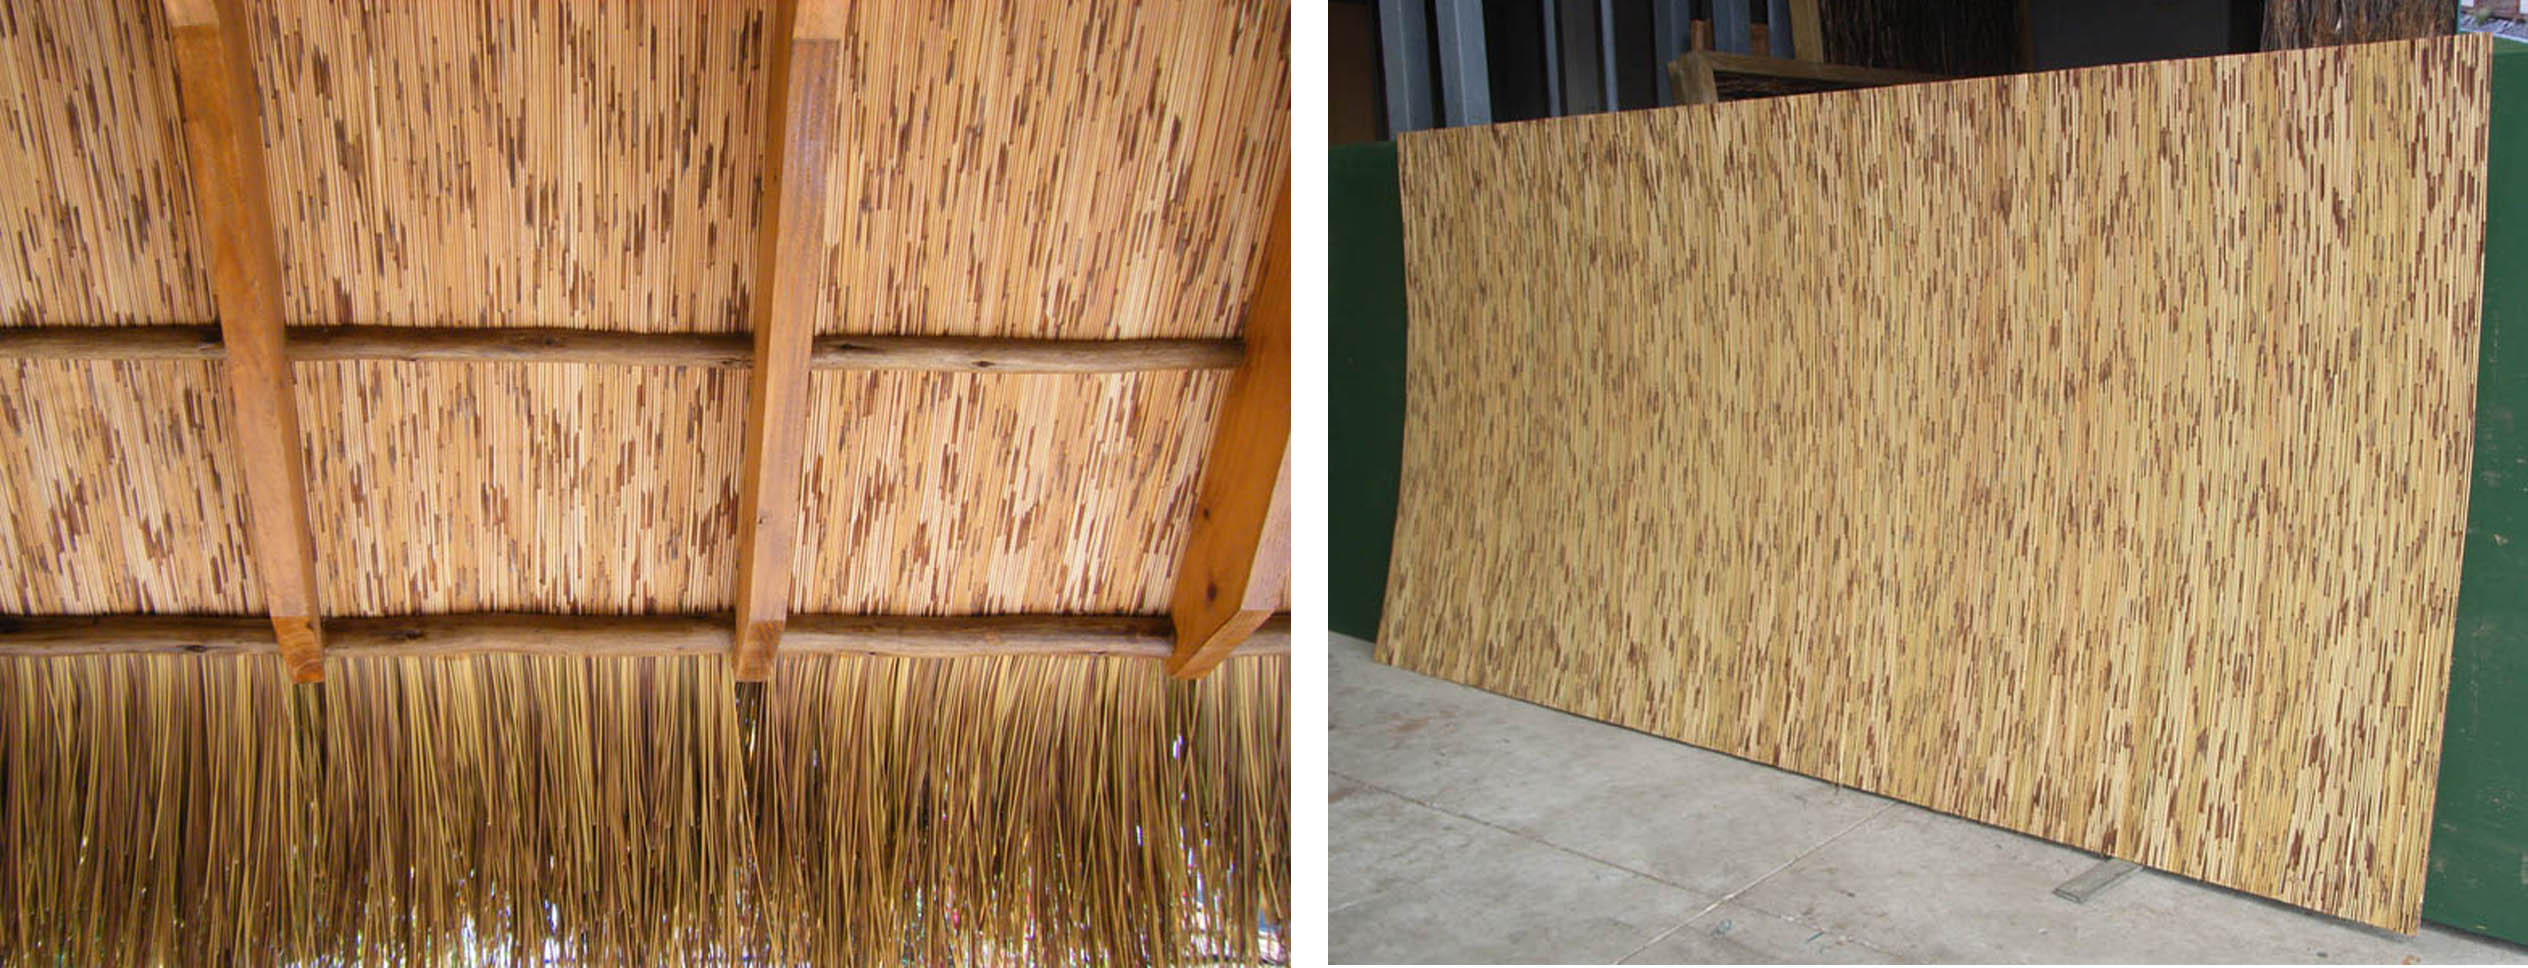 100 thatched roof materials bamboo eucalyptus pin by for Bamboo roofing materials